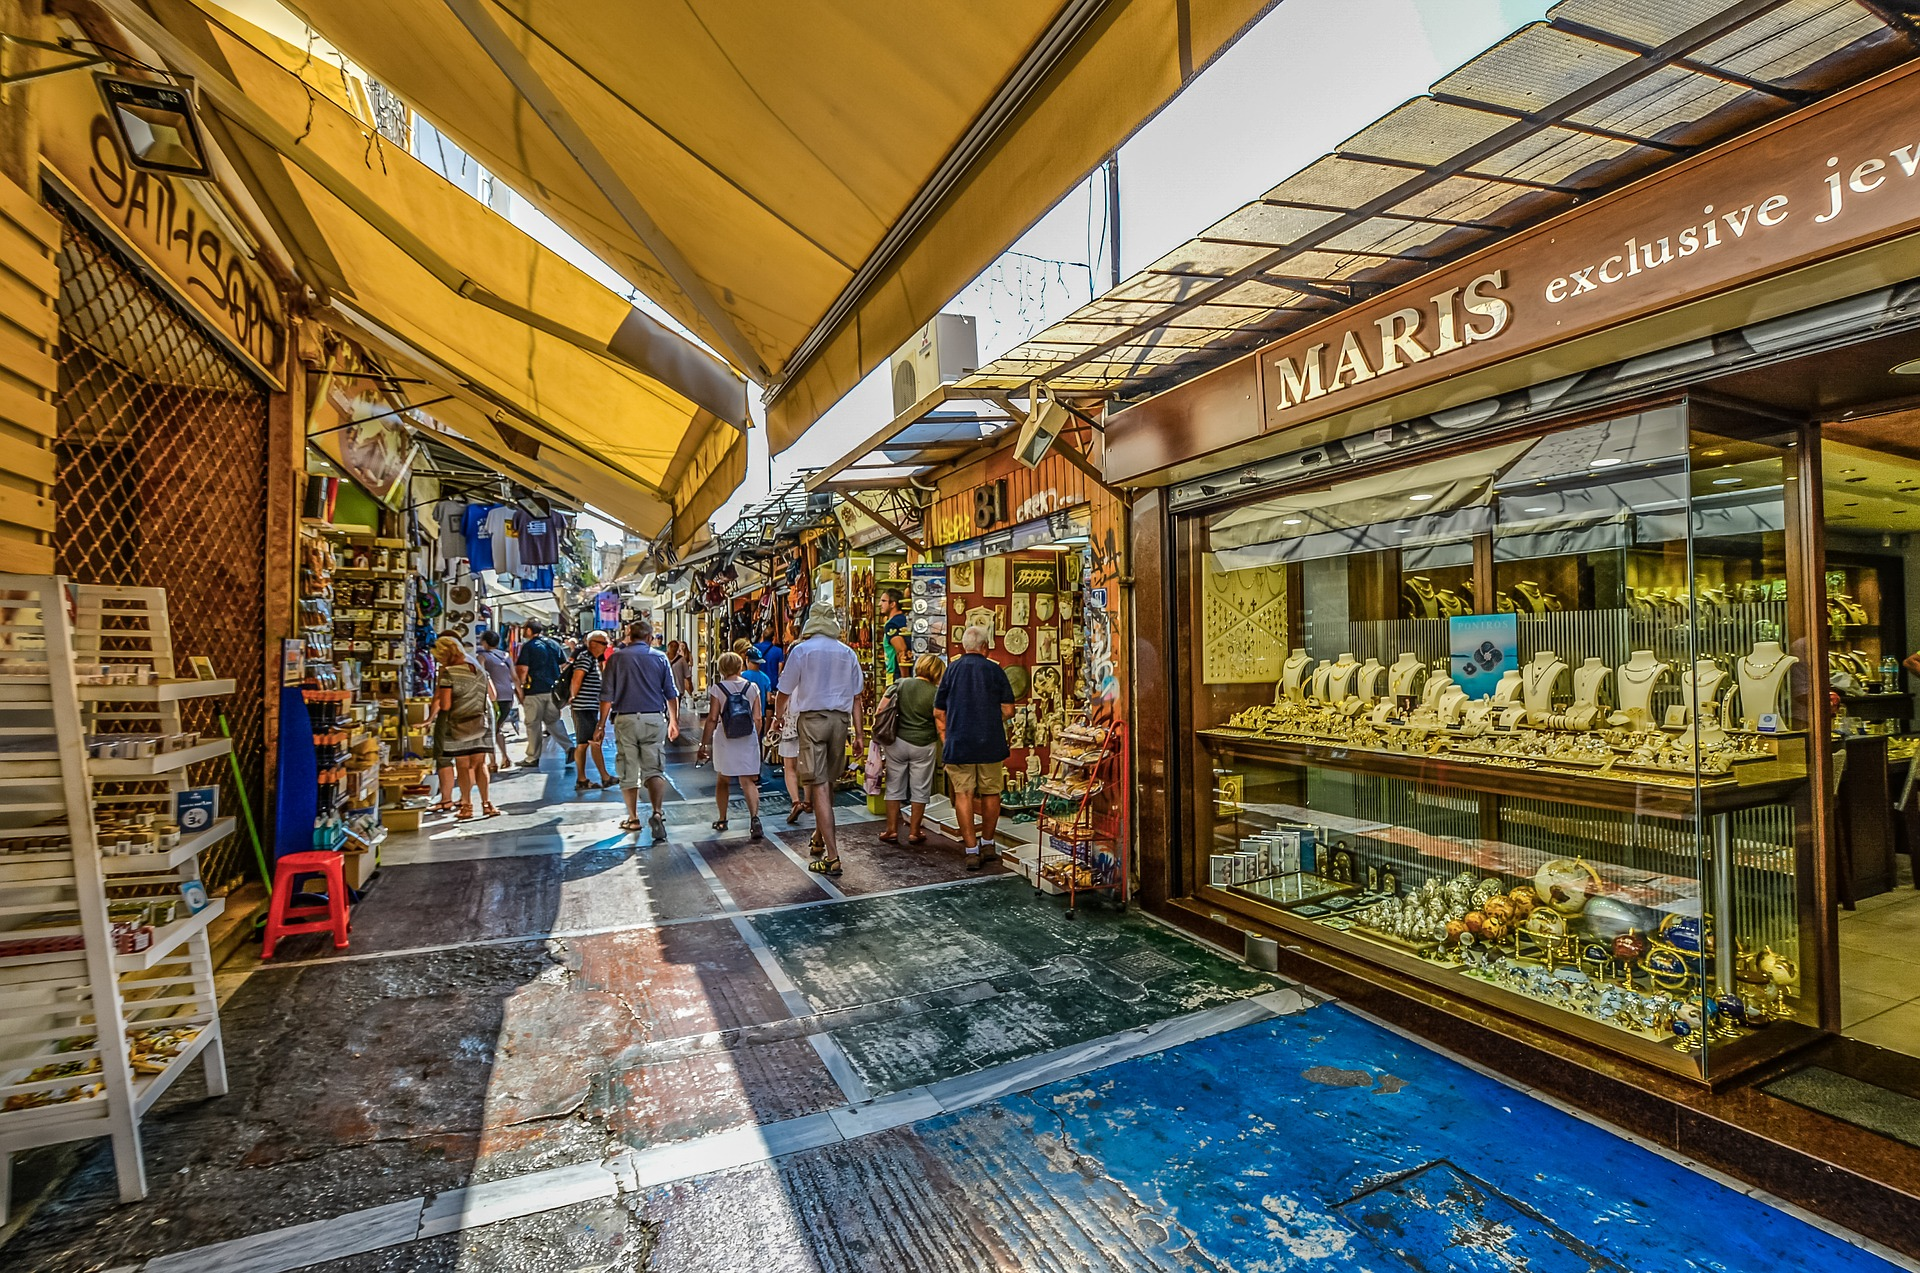 Market in Athens, Greece